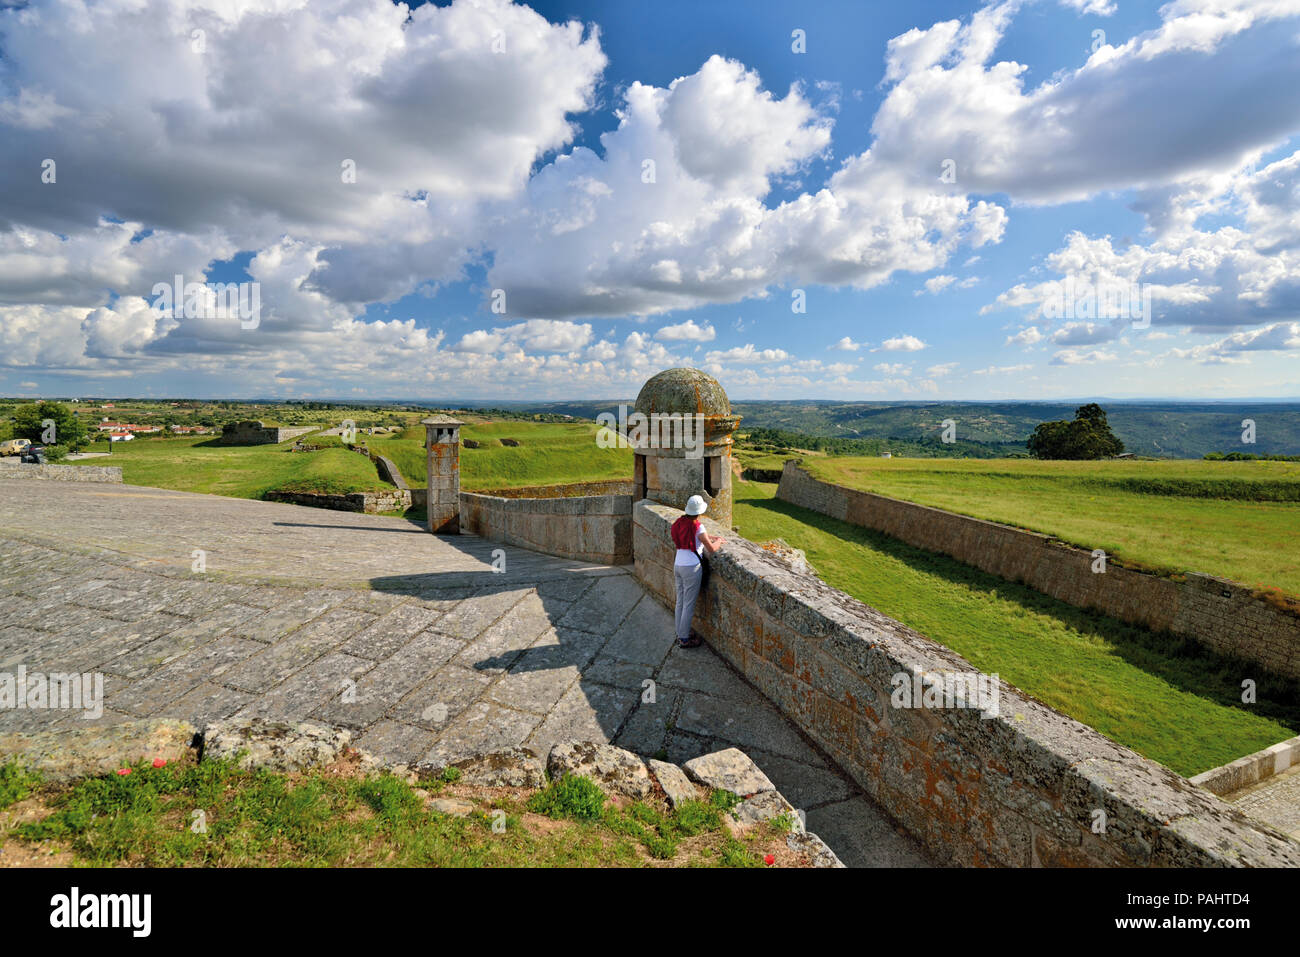 Woman enjoying view from fortress walls over a wide green land and dramatic moving clouds - Stock Image